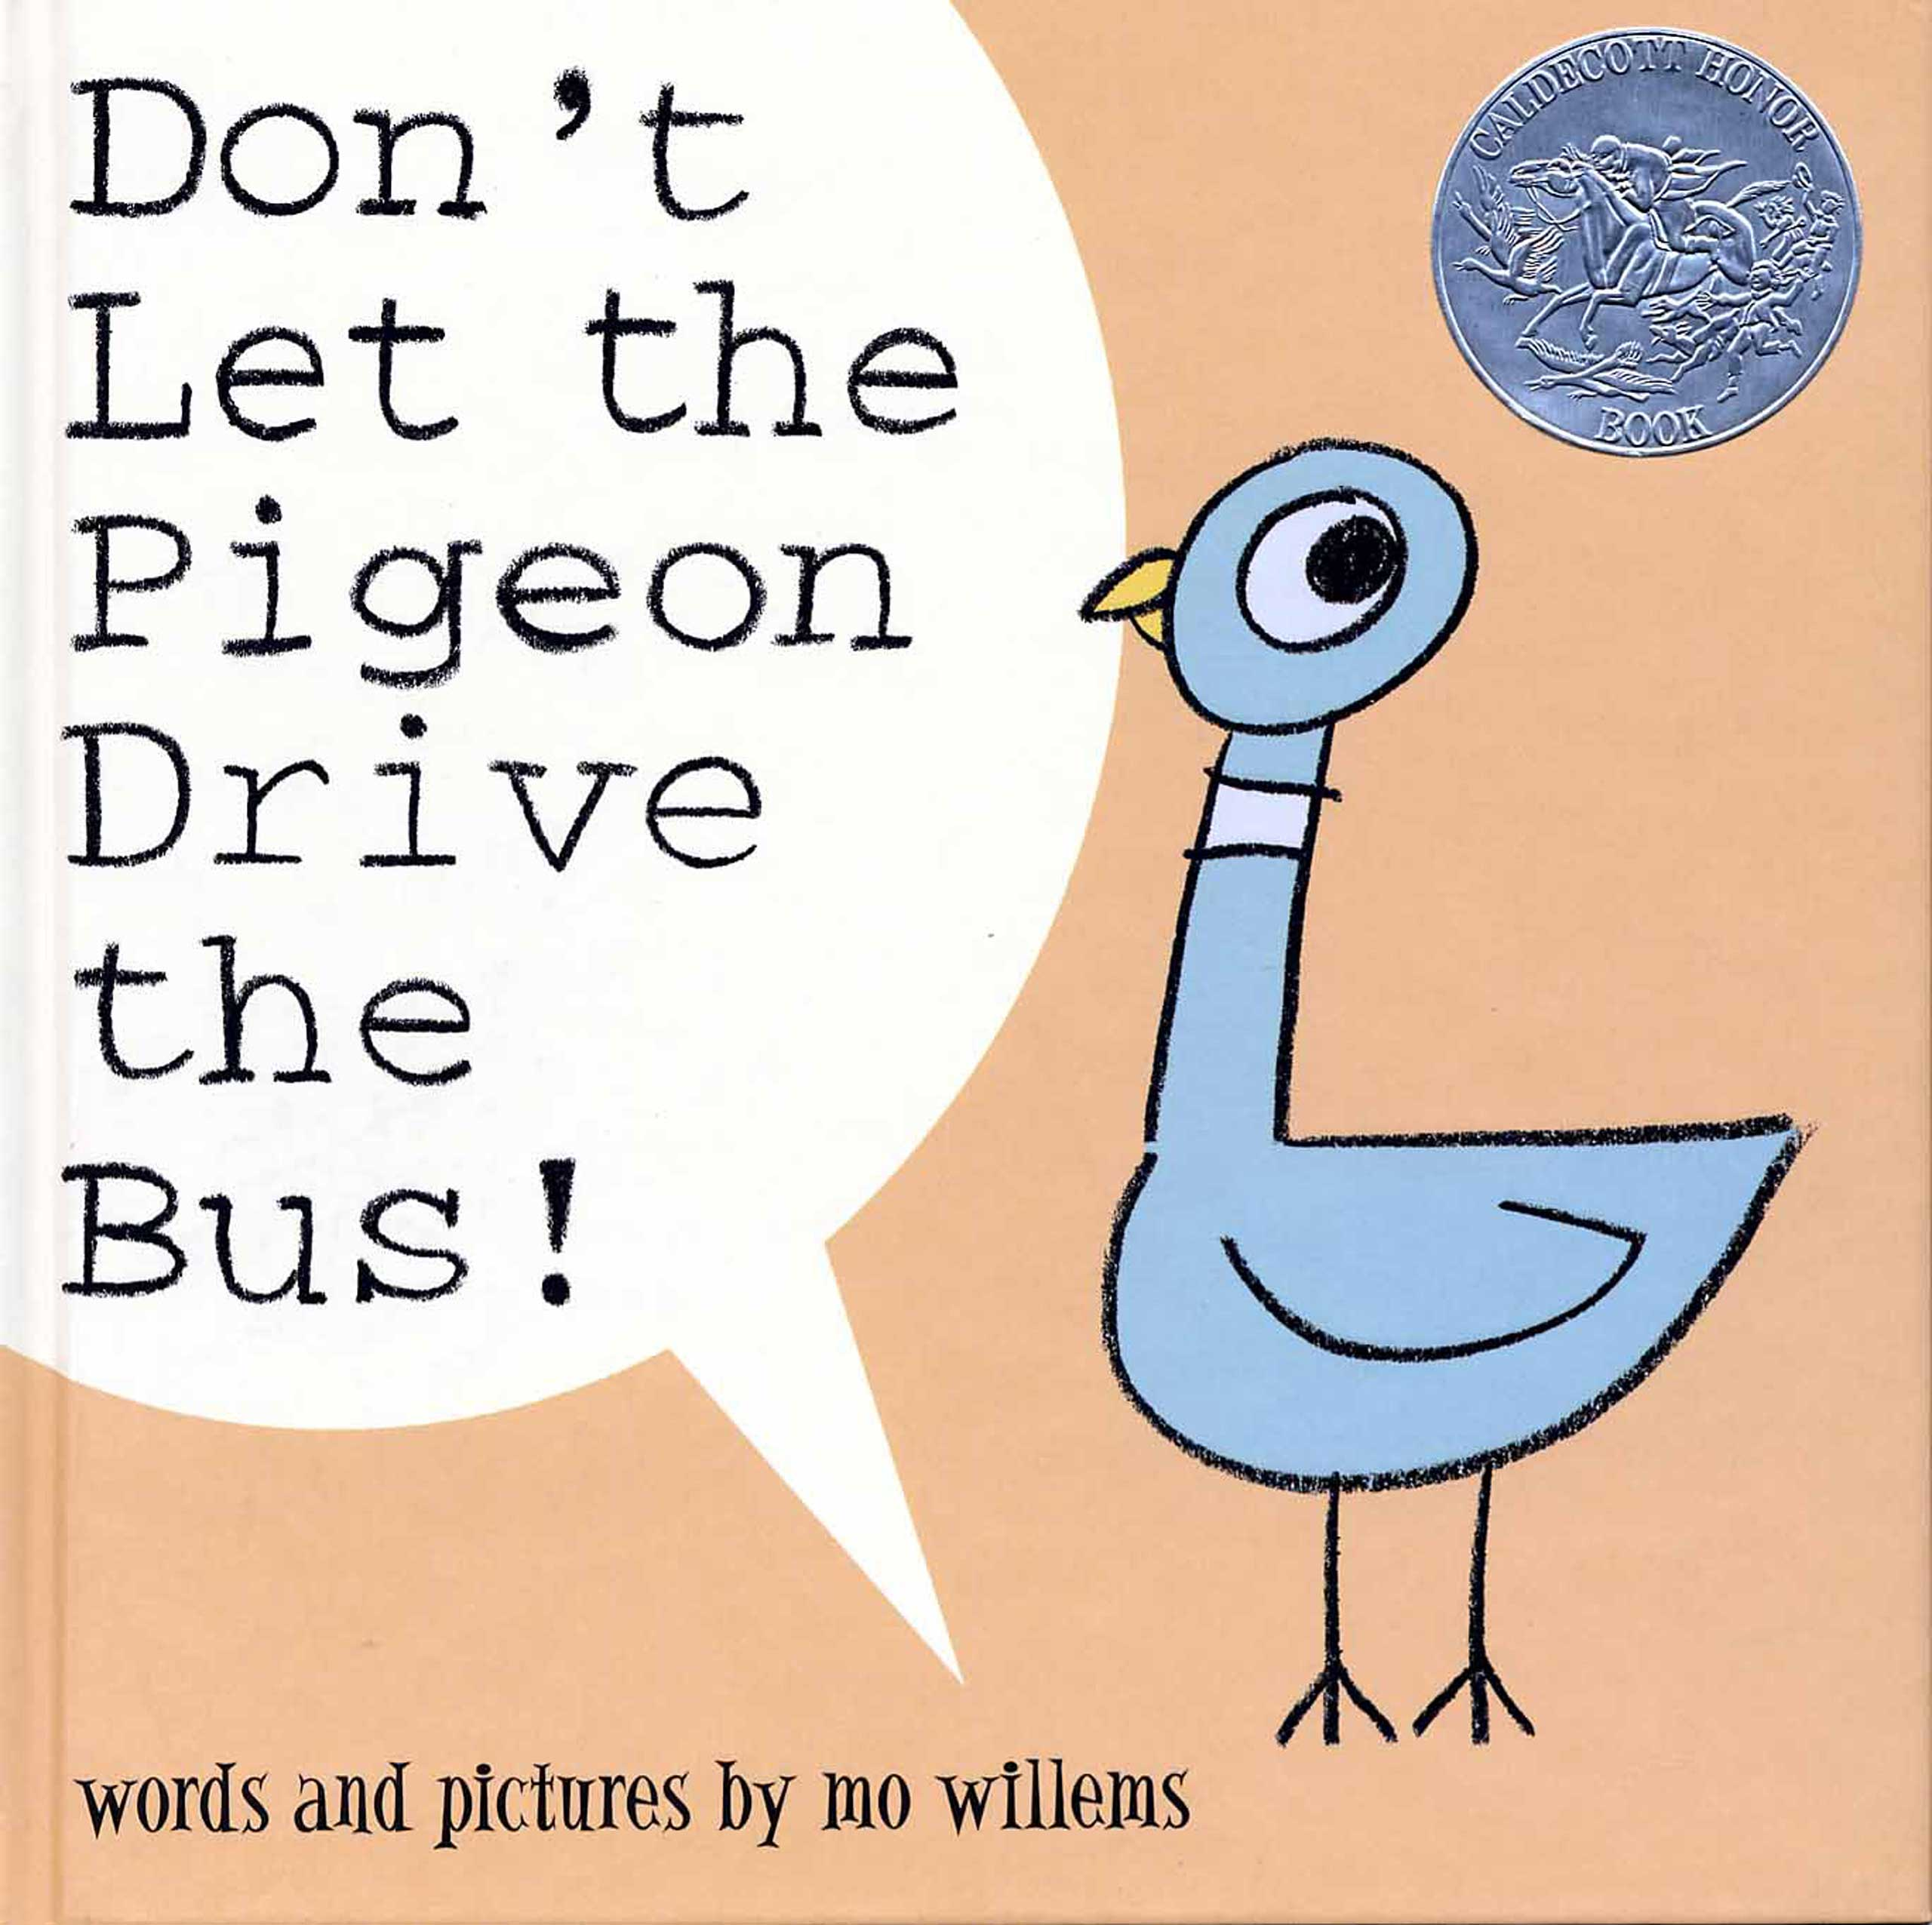 Don't Let the Pigeon Drive the Bus, by Mo Williams.                                                                                                                            One stubborn pigeon refuses to give up on his bird-brained dream of driving a vehicle.                                                                                                                            Buy now: Don't Let the Pigeon Drive the Bus